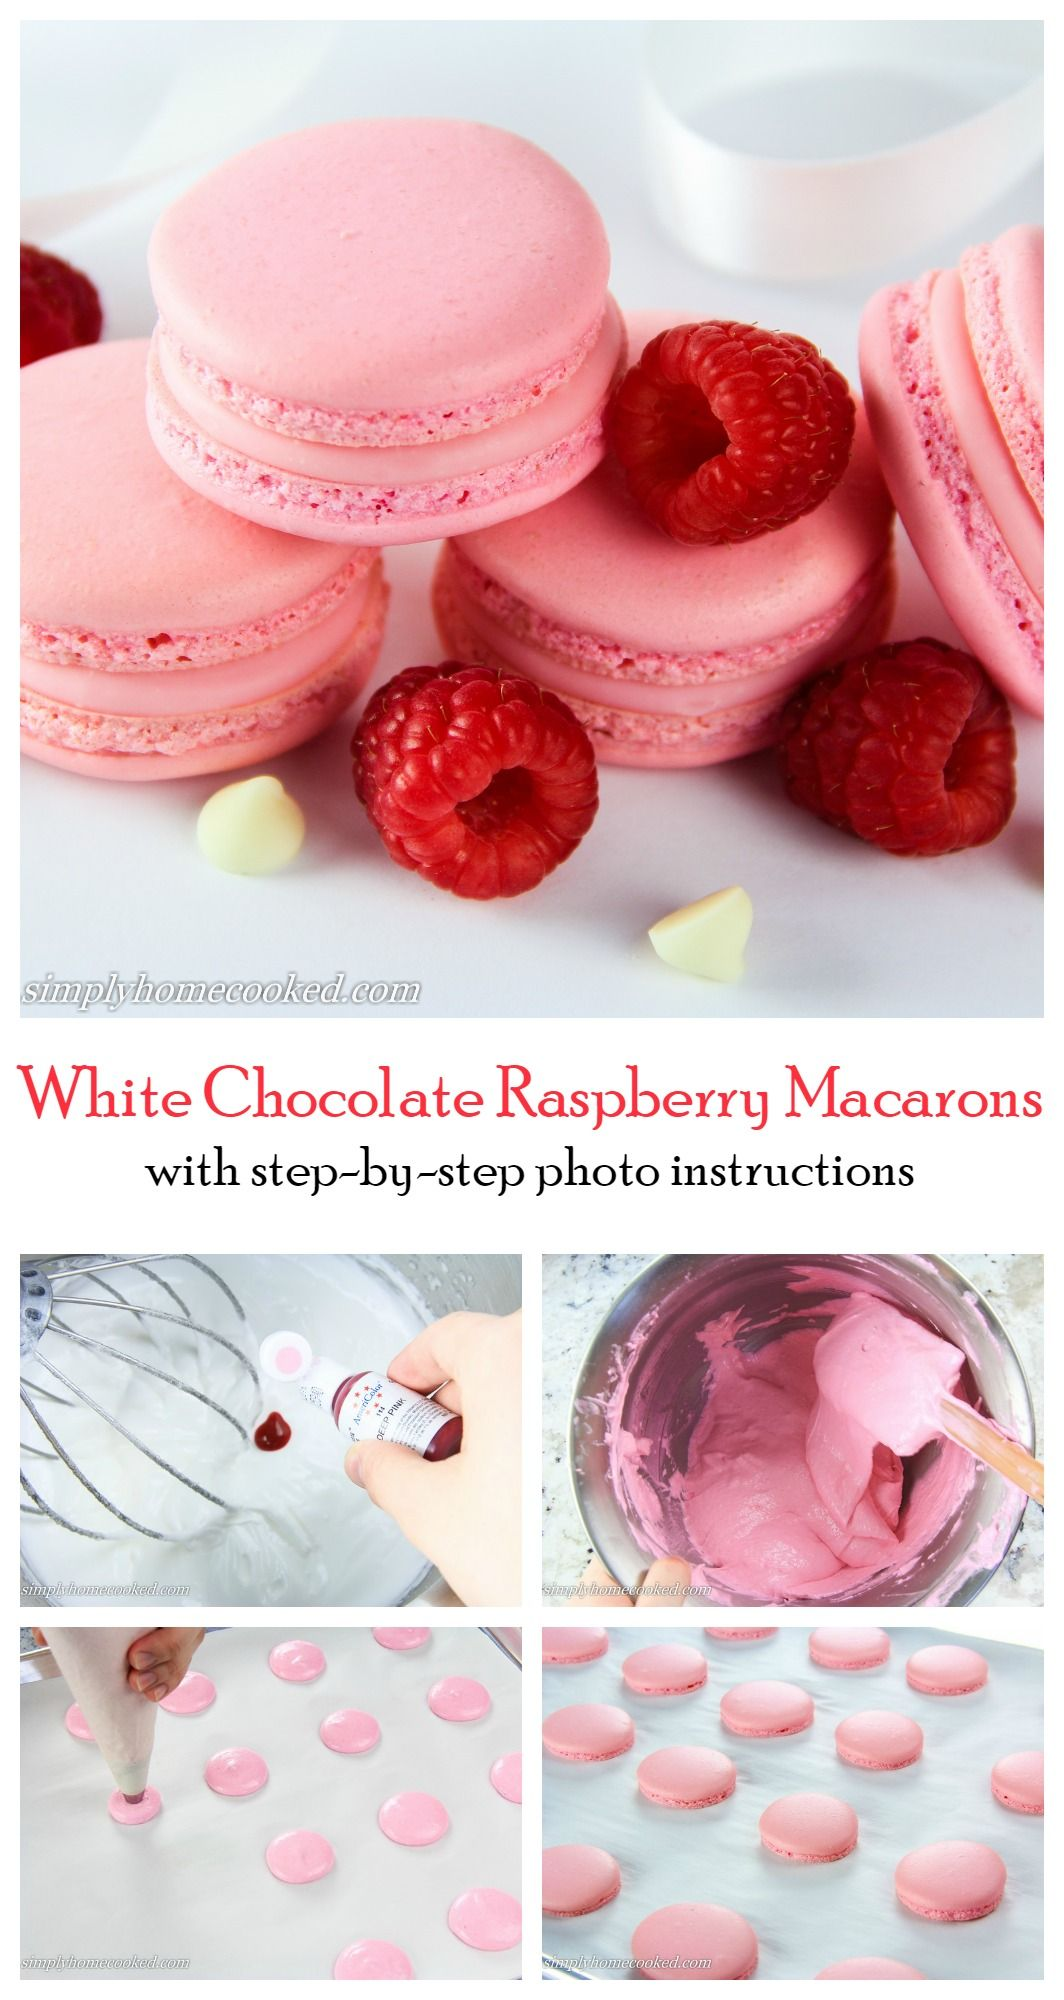 Sweet pink macarons filled with a white chocolate raspberry ganache. More